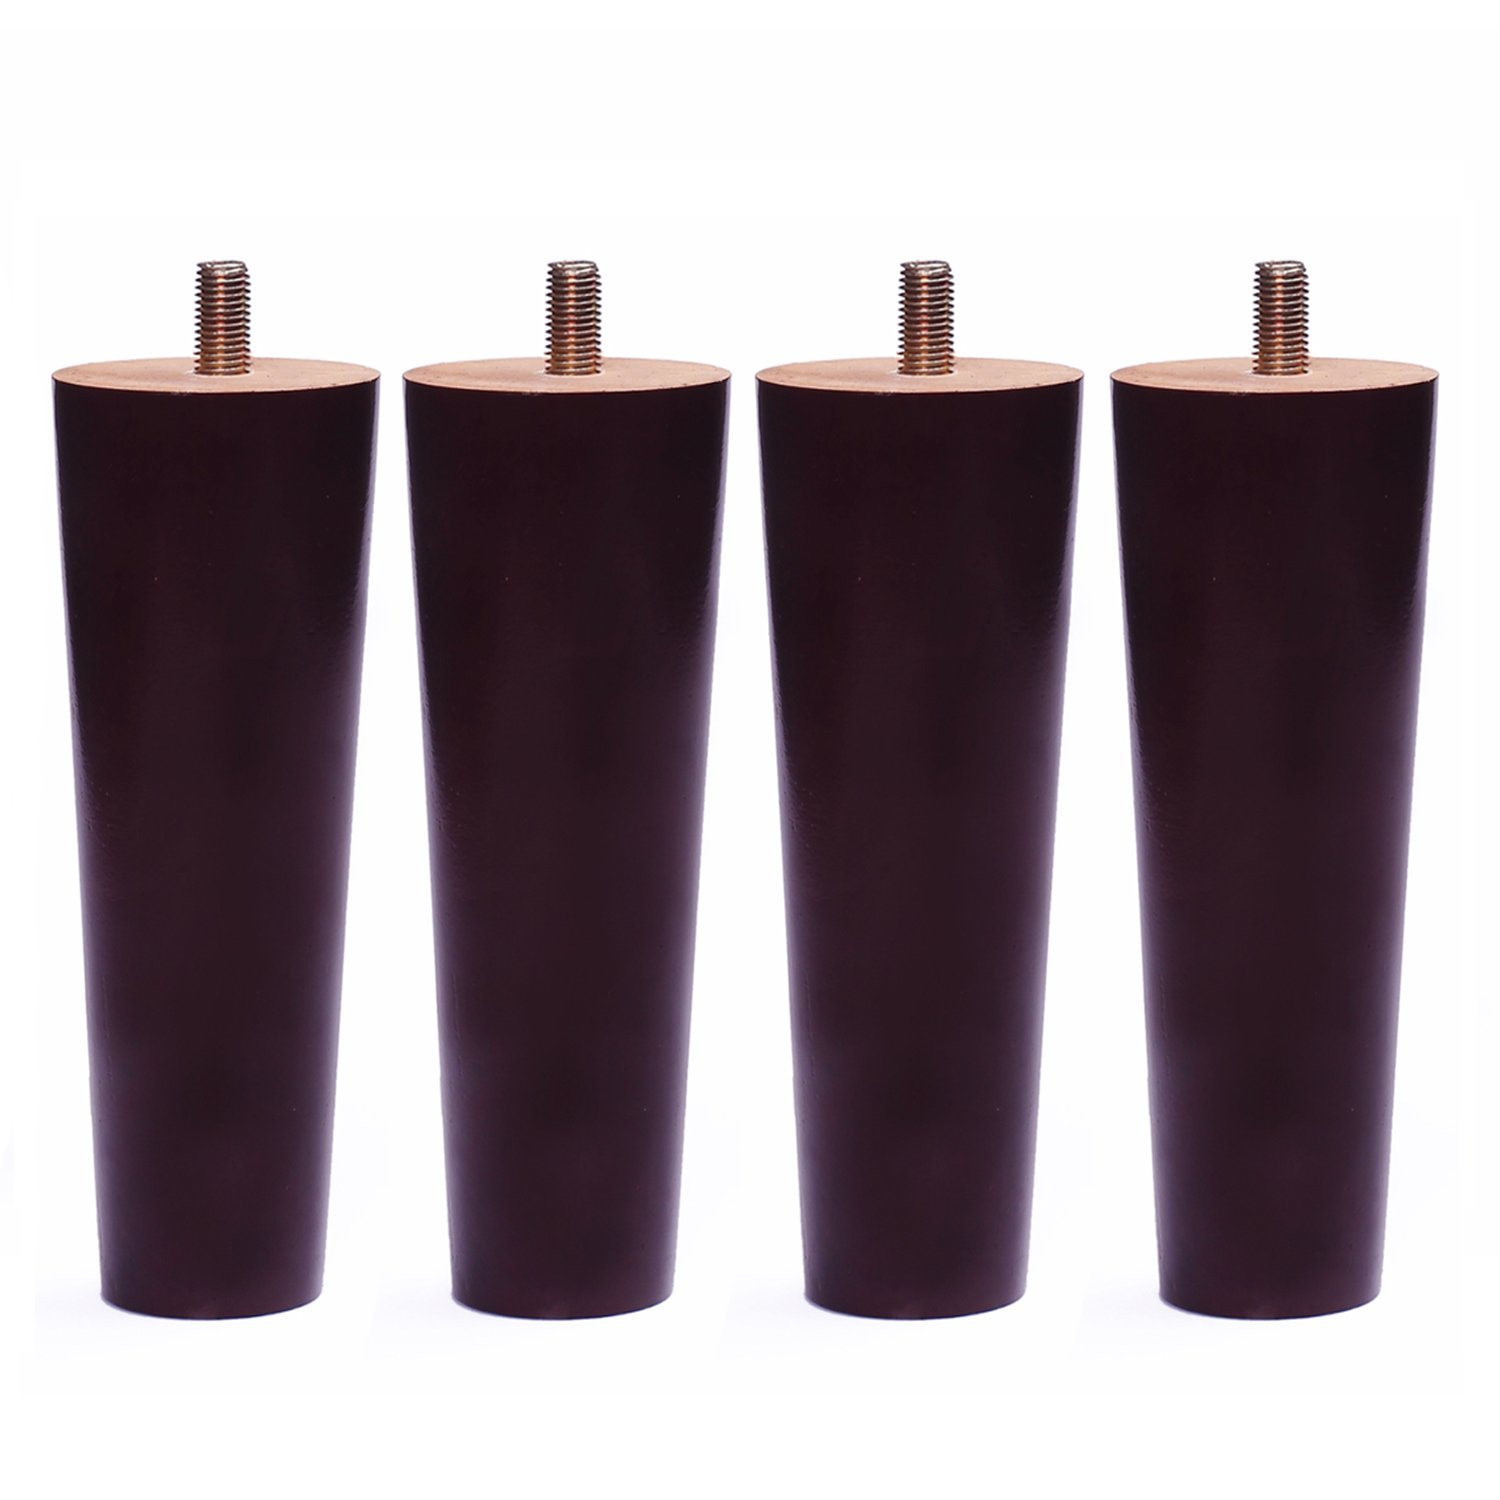 Round Solid Wood Furniture Sofa/Chair/Couch/Loveseat/Cabinet Replacement Legs (7 Inches, Set of 4)